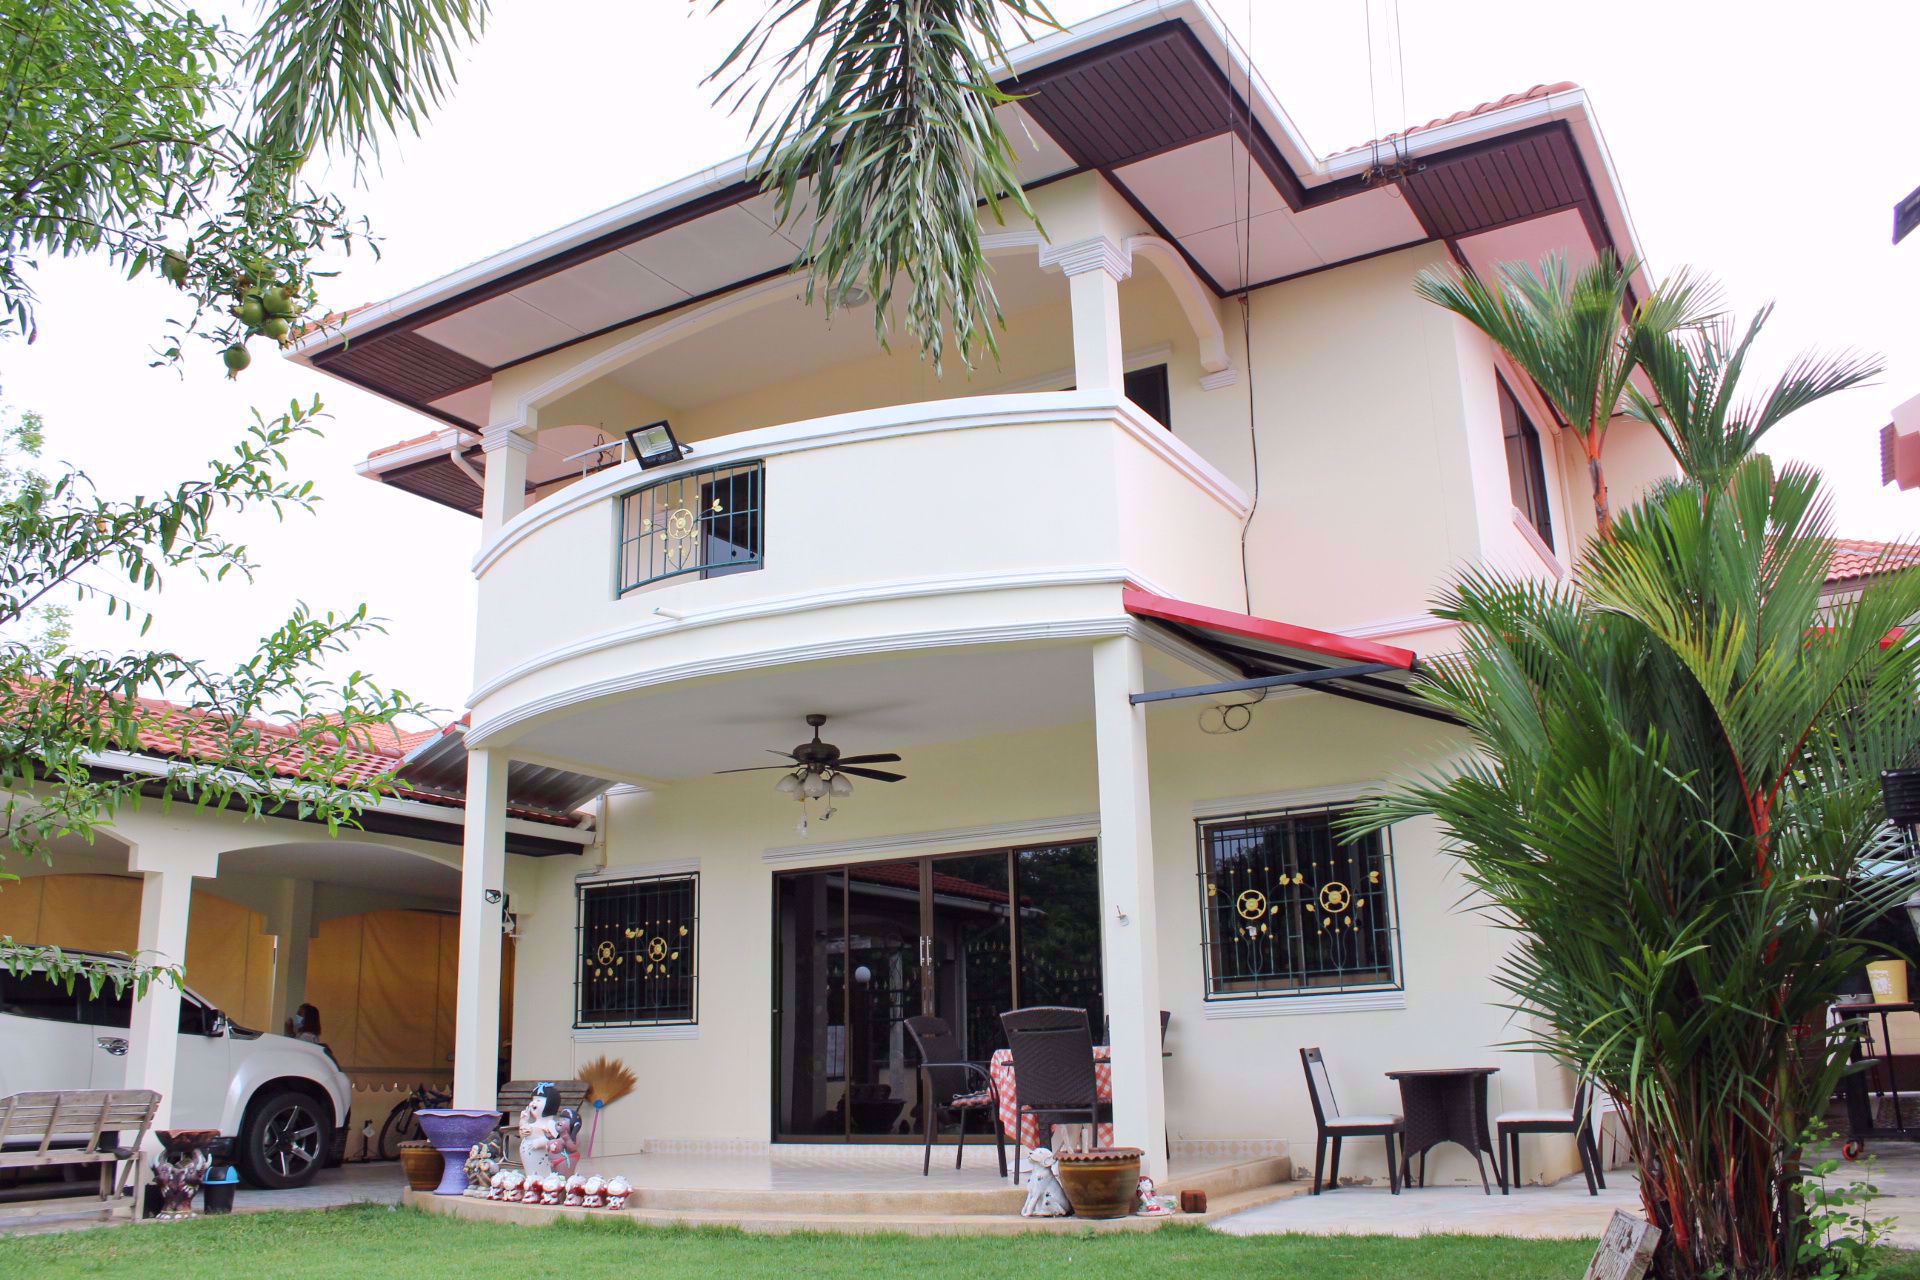 Picture of 3 Bedrooms bed in House in Royal View Village in East Pattaya H009193